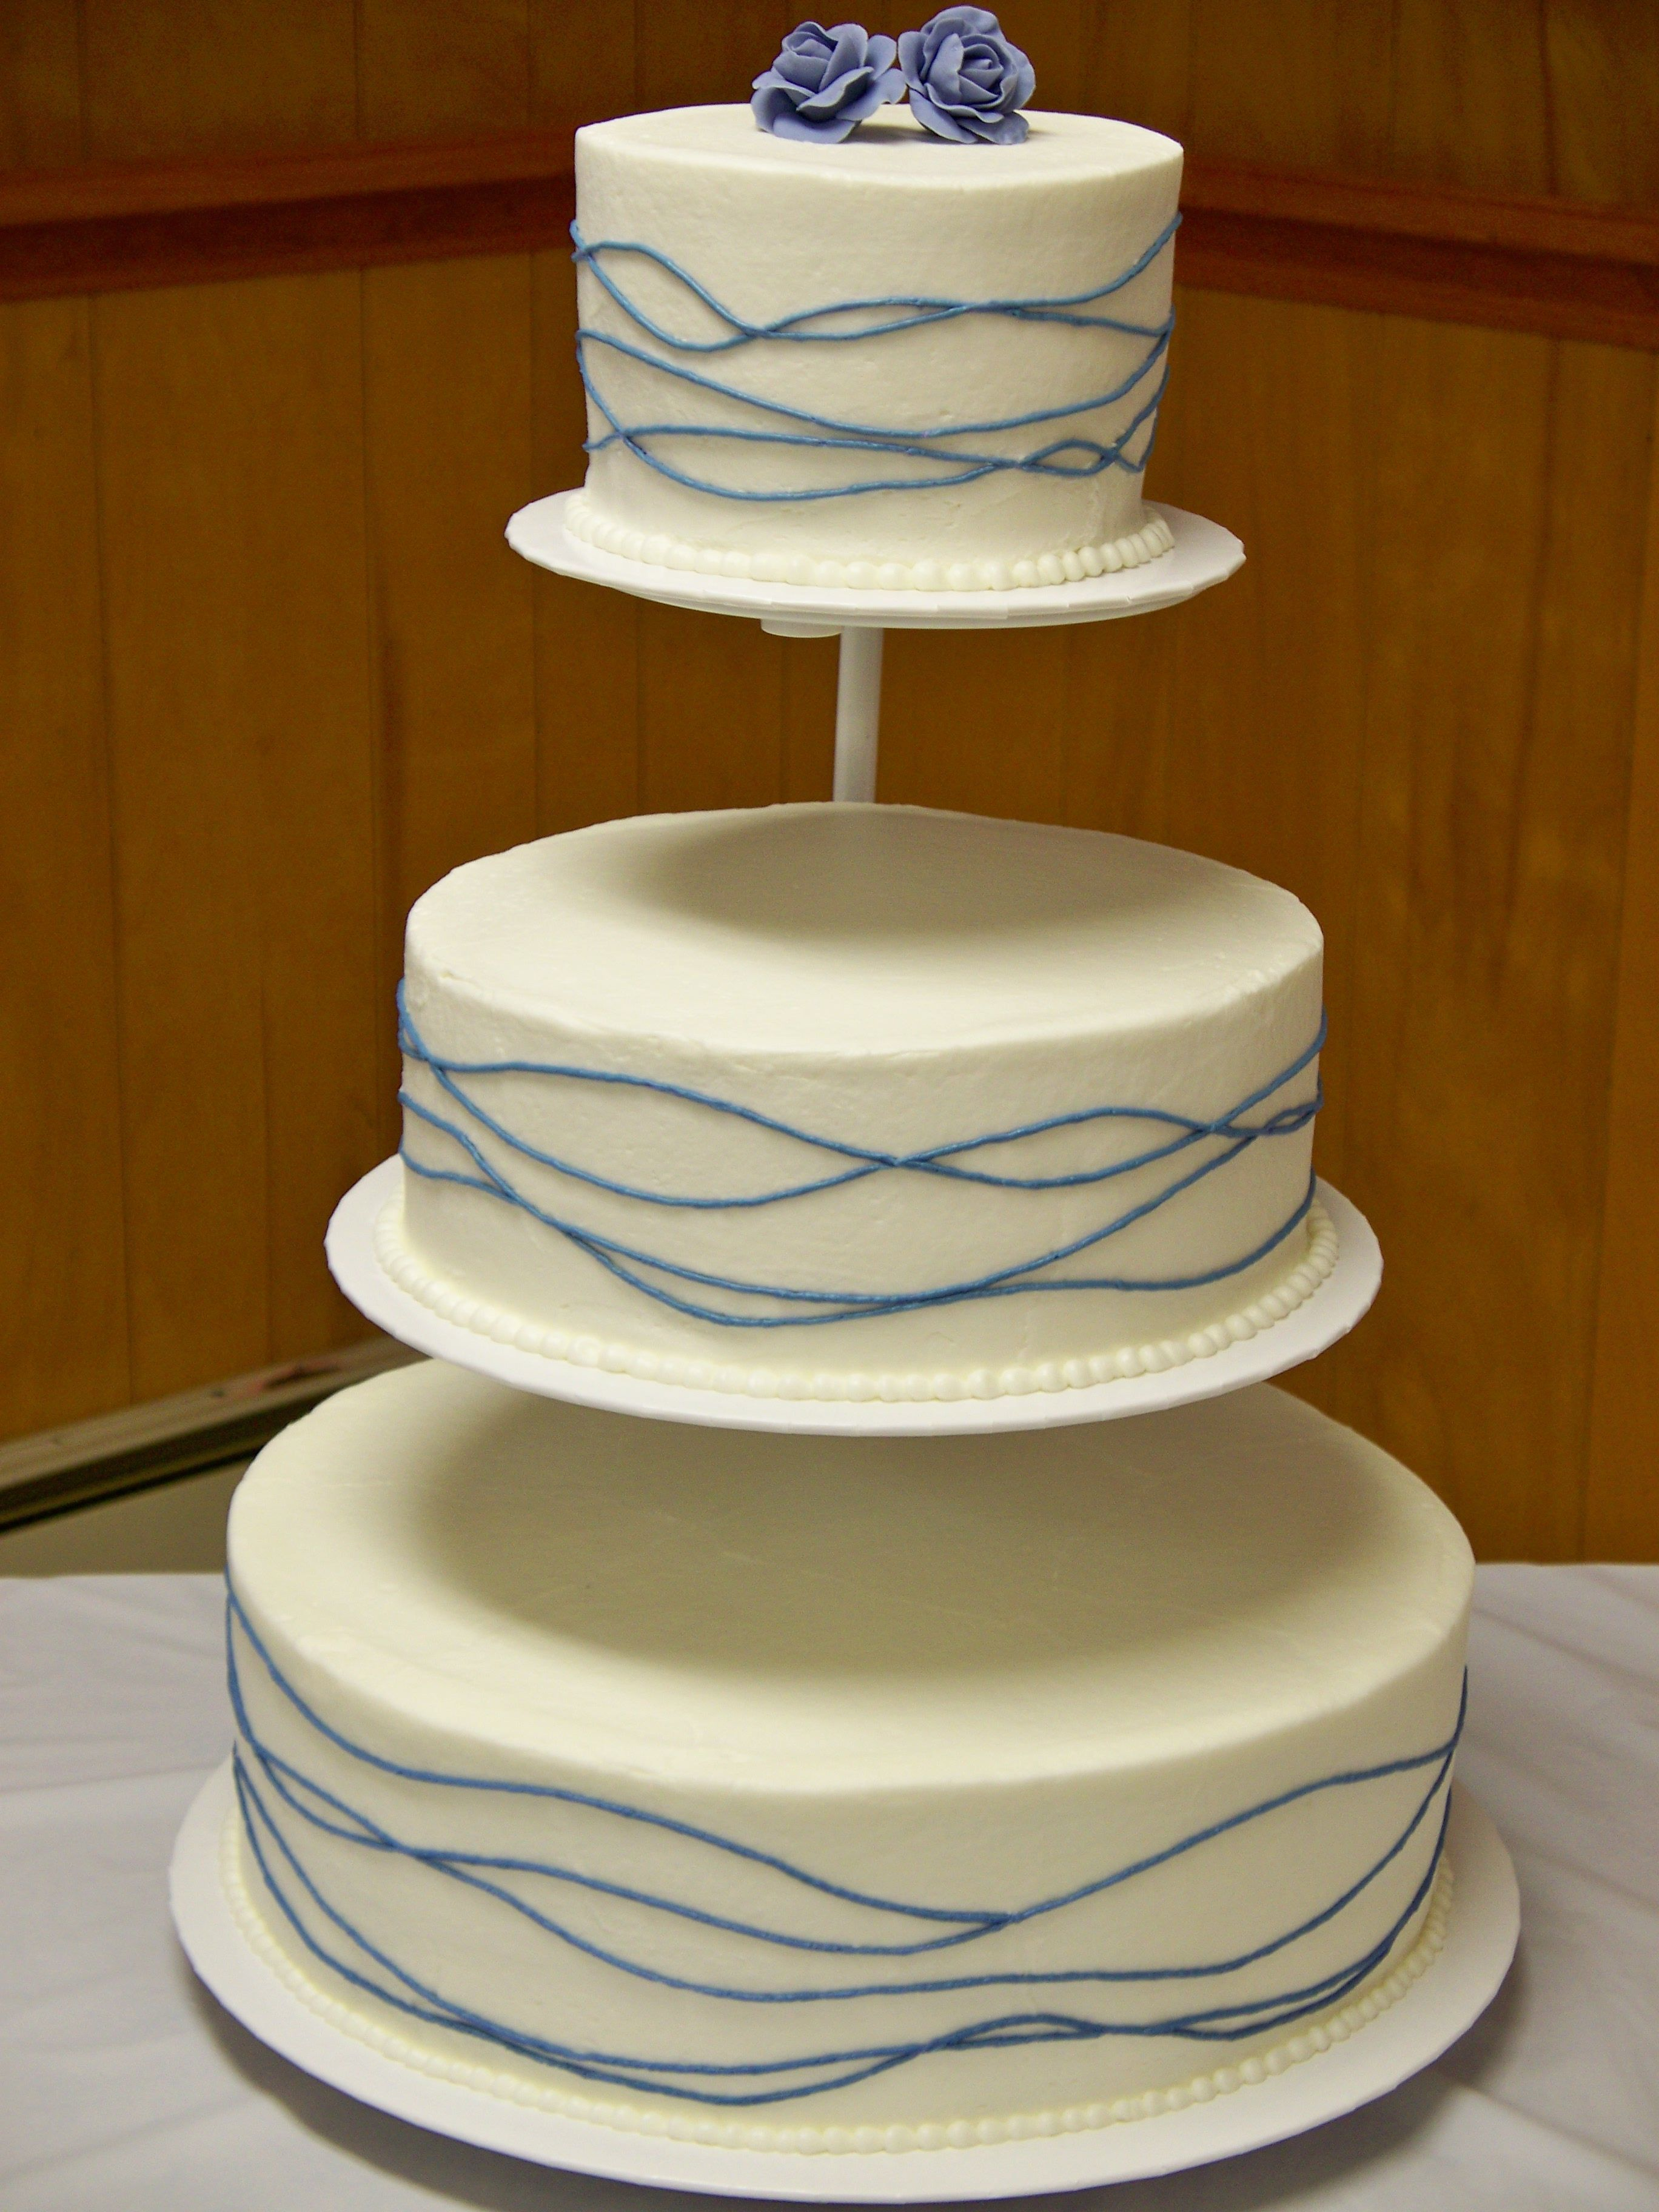 Floating Cake Stand Cakes Periwinkle Waves Wedding Round